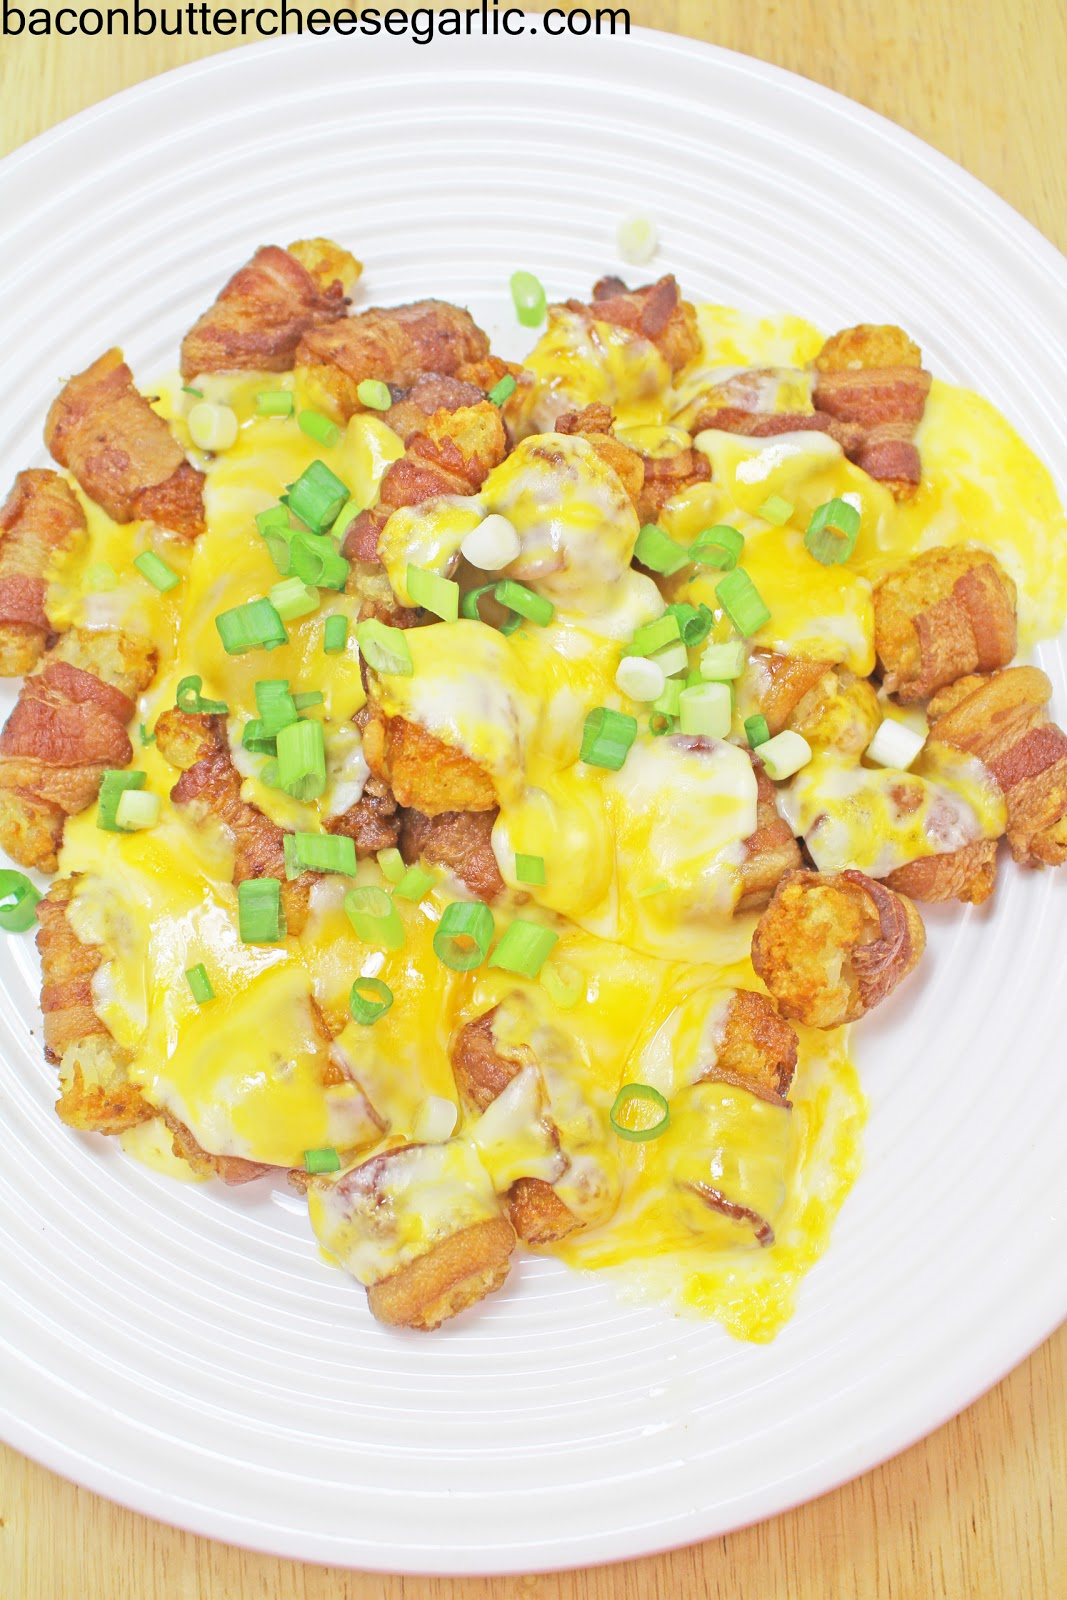 Bacon & Cheese Wrapped Tater Tots With Tabasco Recipes — Dishmaps